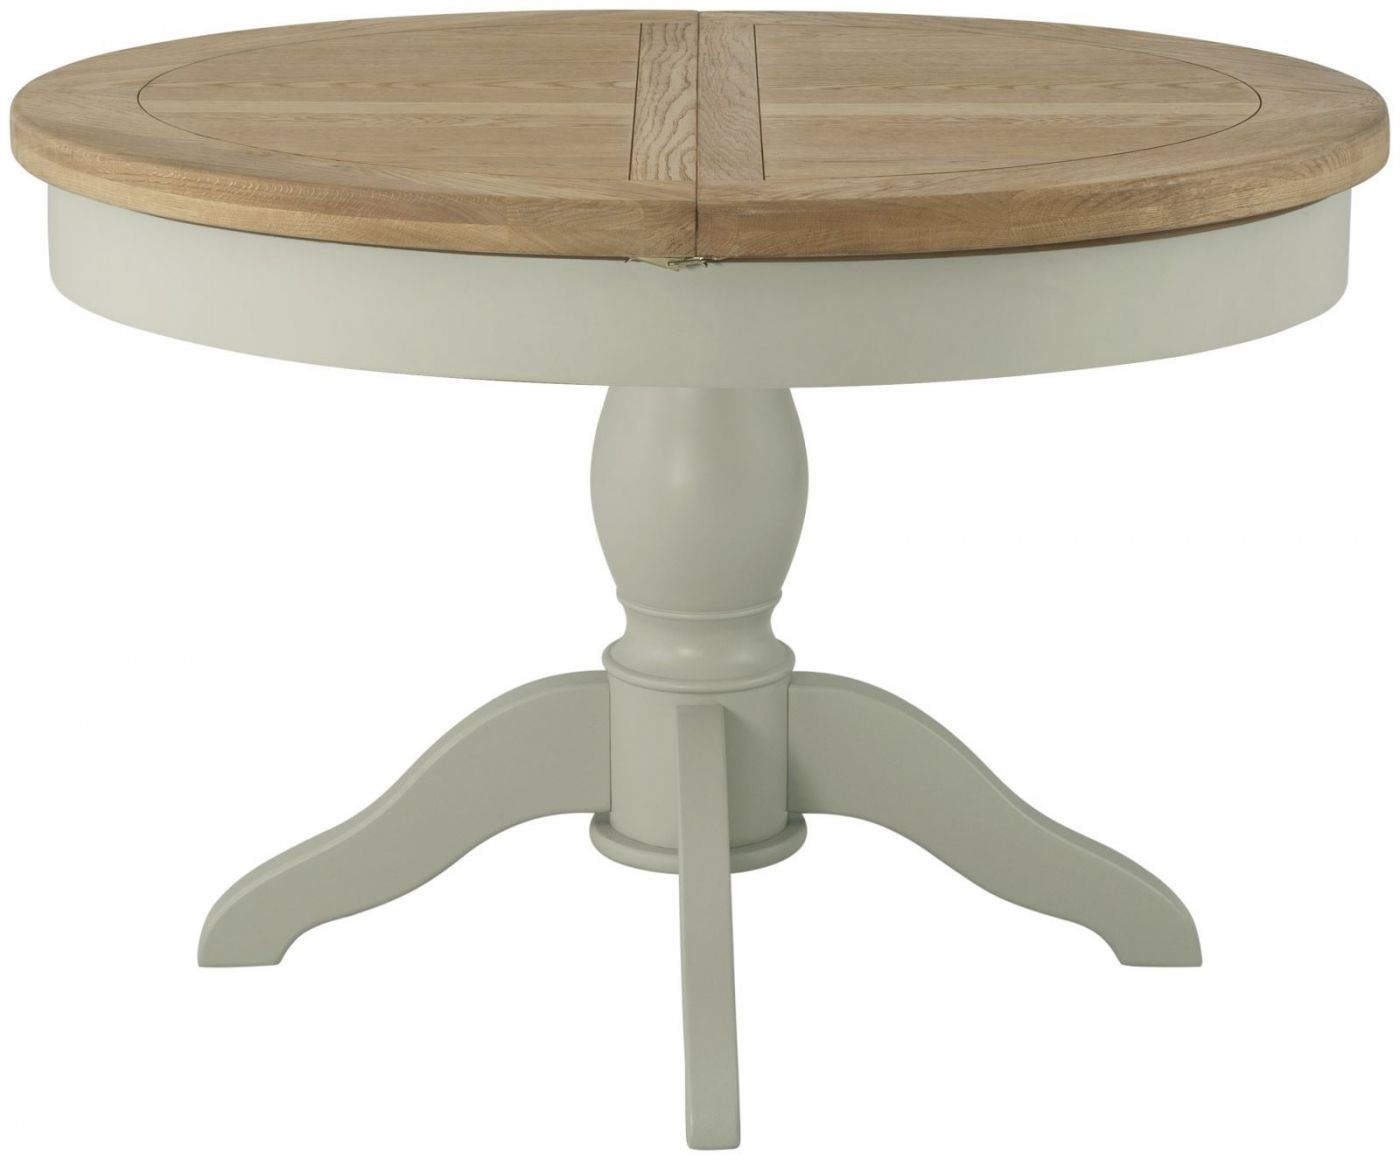 Portland Stone Grand Round Butterfly Extending Table Kitchen Dining Room Portland Painted Furniture Collection Contemporary Furniture Established Family Business Quick Uk Delivery Excellent Customer Service Robinsons Interiors